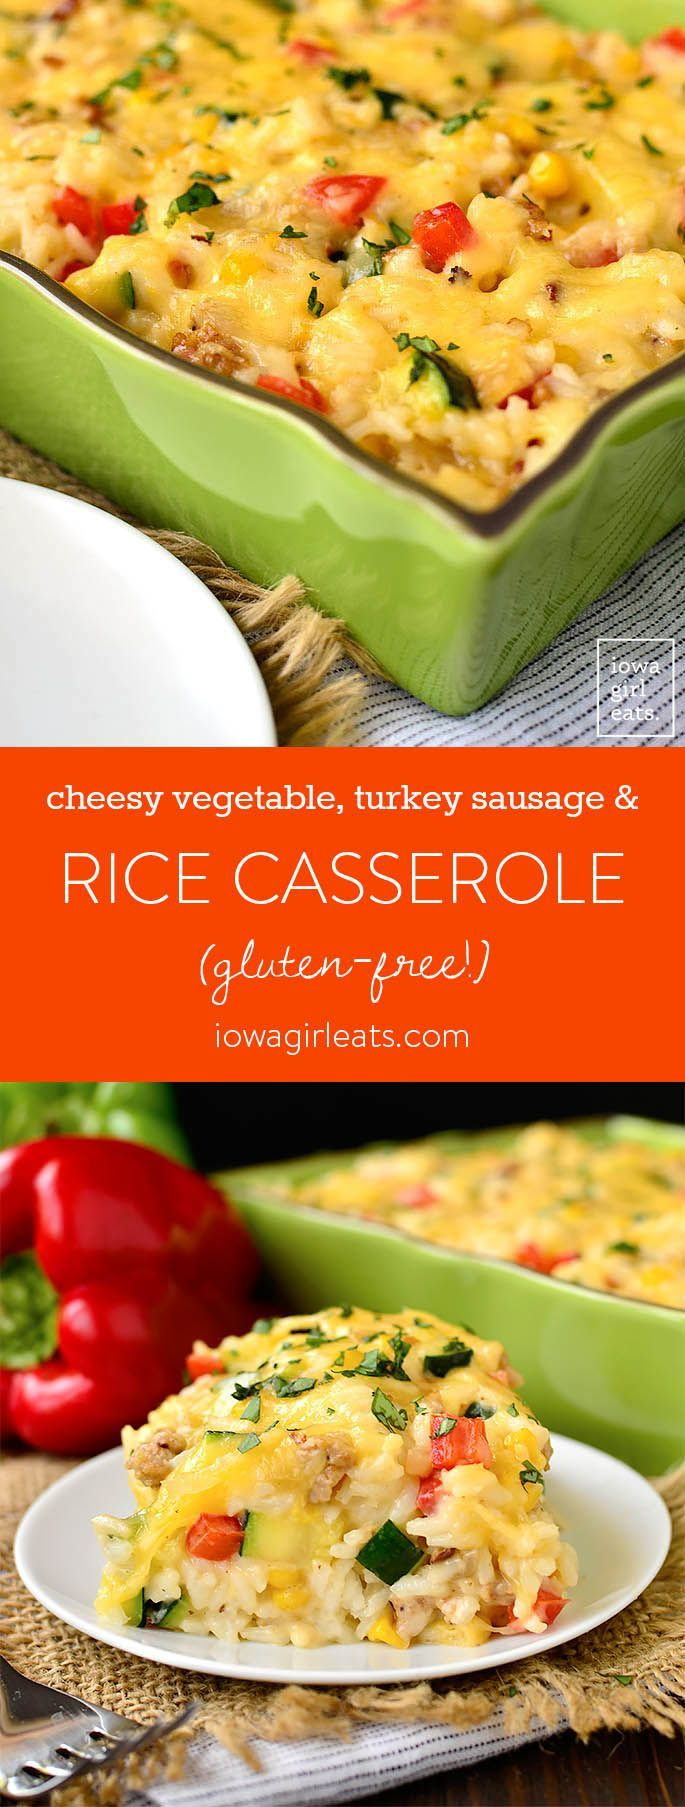 Cheesy Vegetable, Turkey Sausage and Rice Casserole is a home run! This healthy and filling, gluten-free casserole recipe is pure comfort food. | iowagirleats.com